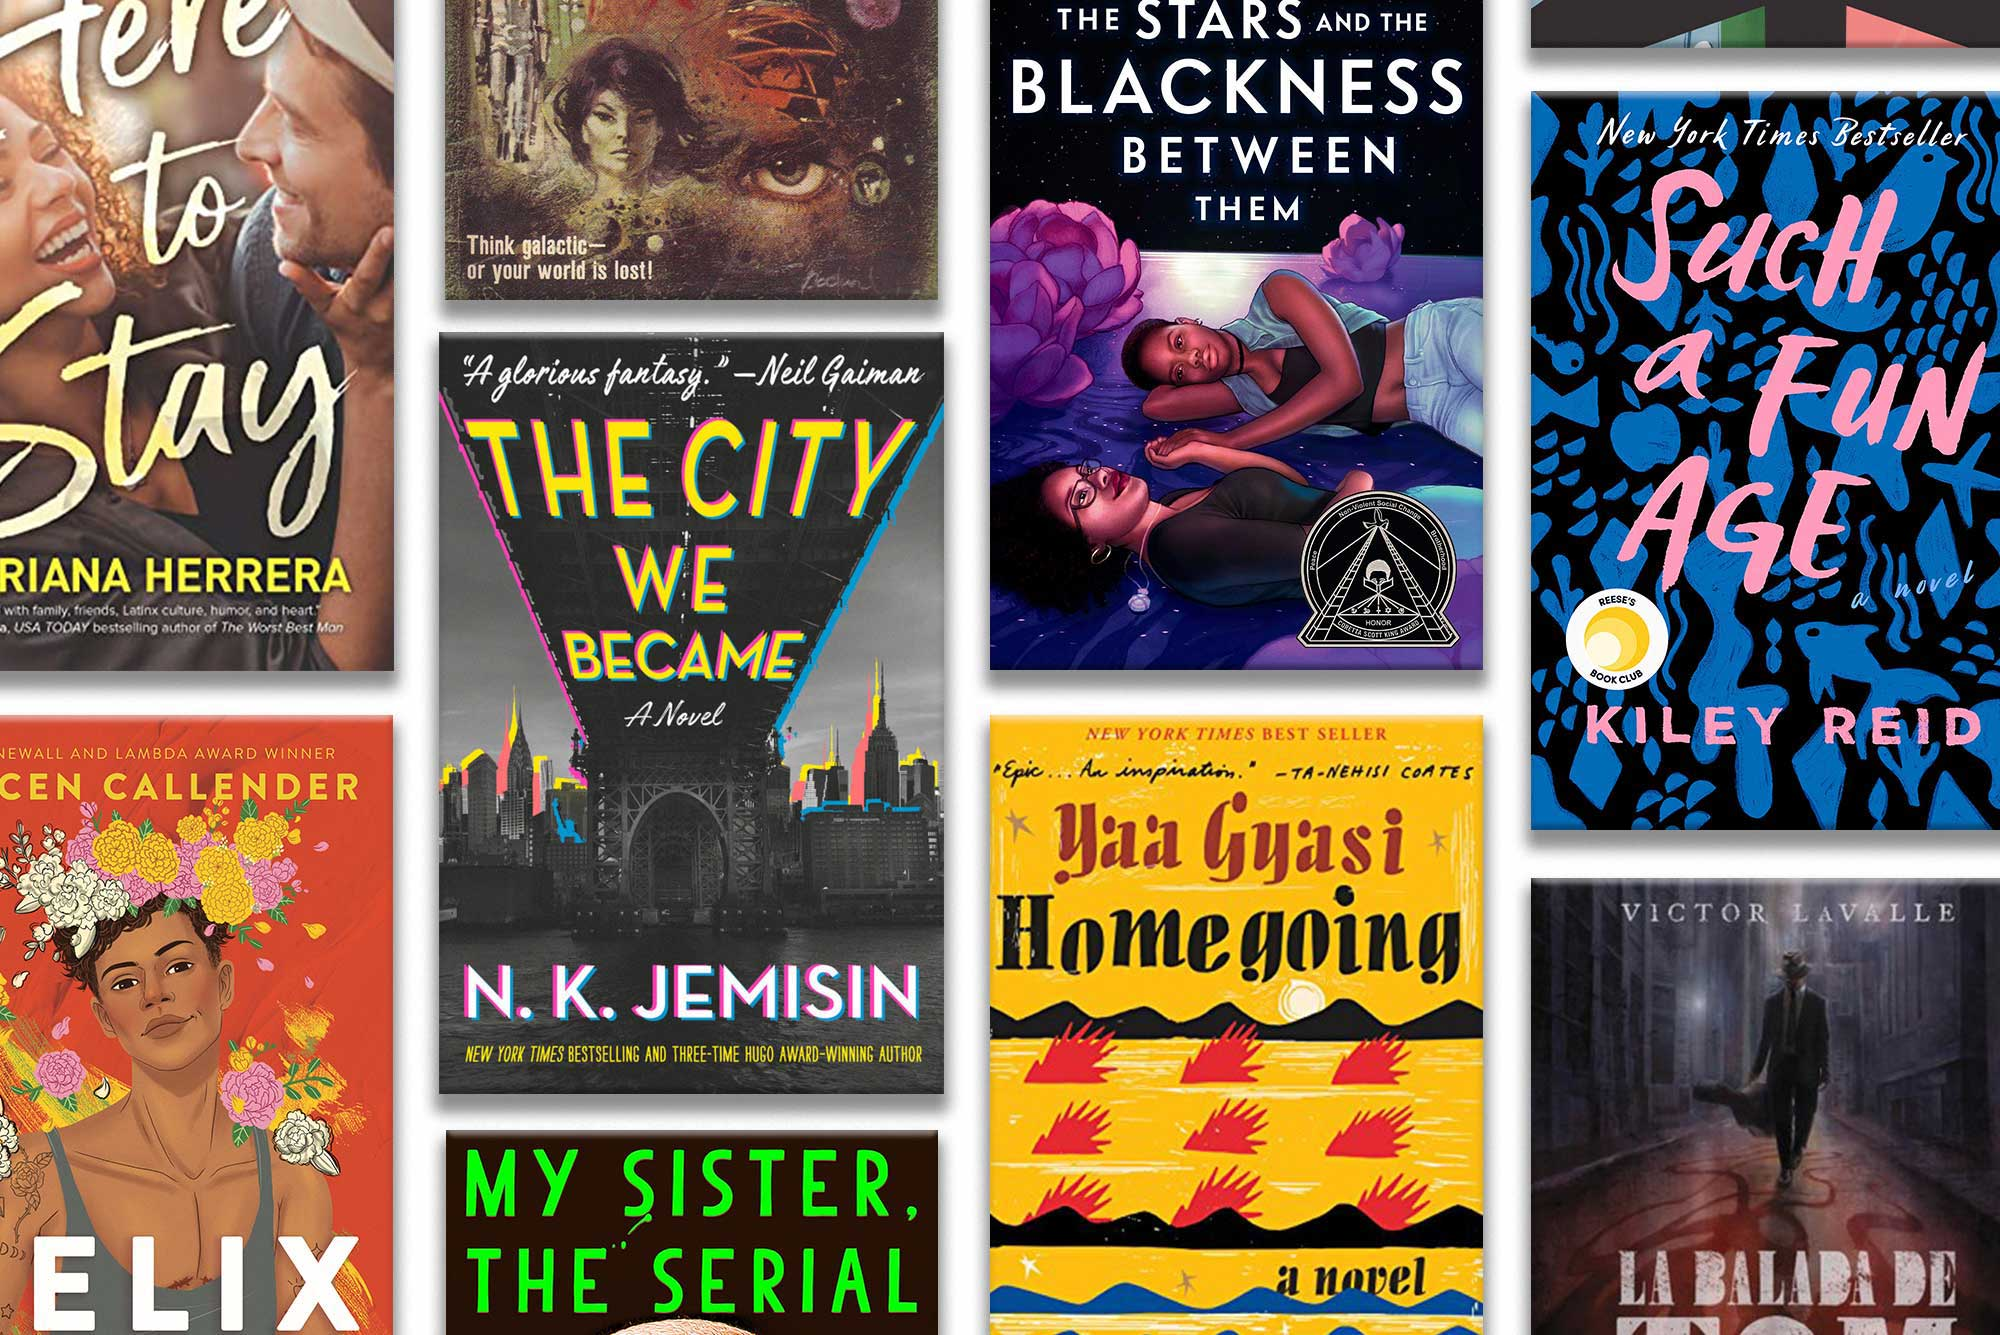 Composite image of the book covers of the following works (right to left): Here to Stay, The Stars and the Blackness Between Them, Such a Fun Age, Felix, The City We Became, Yaa Gyasi's Homegoing, and partially visible covers for The Ballad of Black Tom by Victor Lavalle and My Sister, the Serial Killer by Oyinkan Braithwaite.